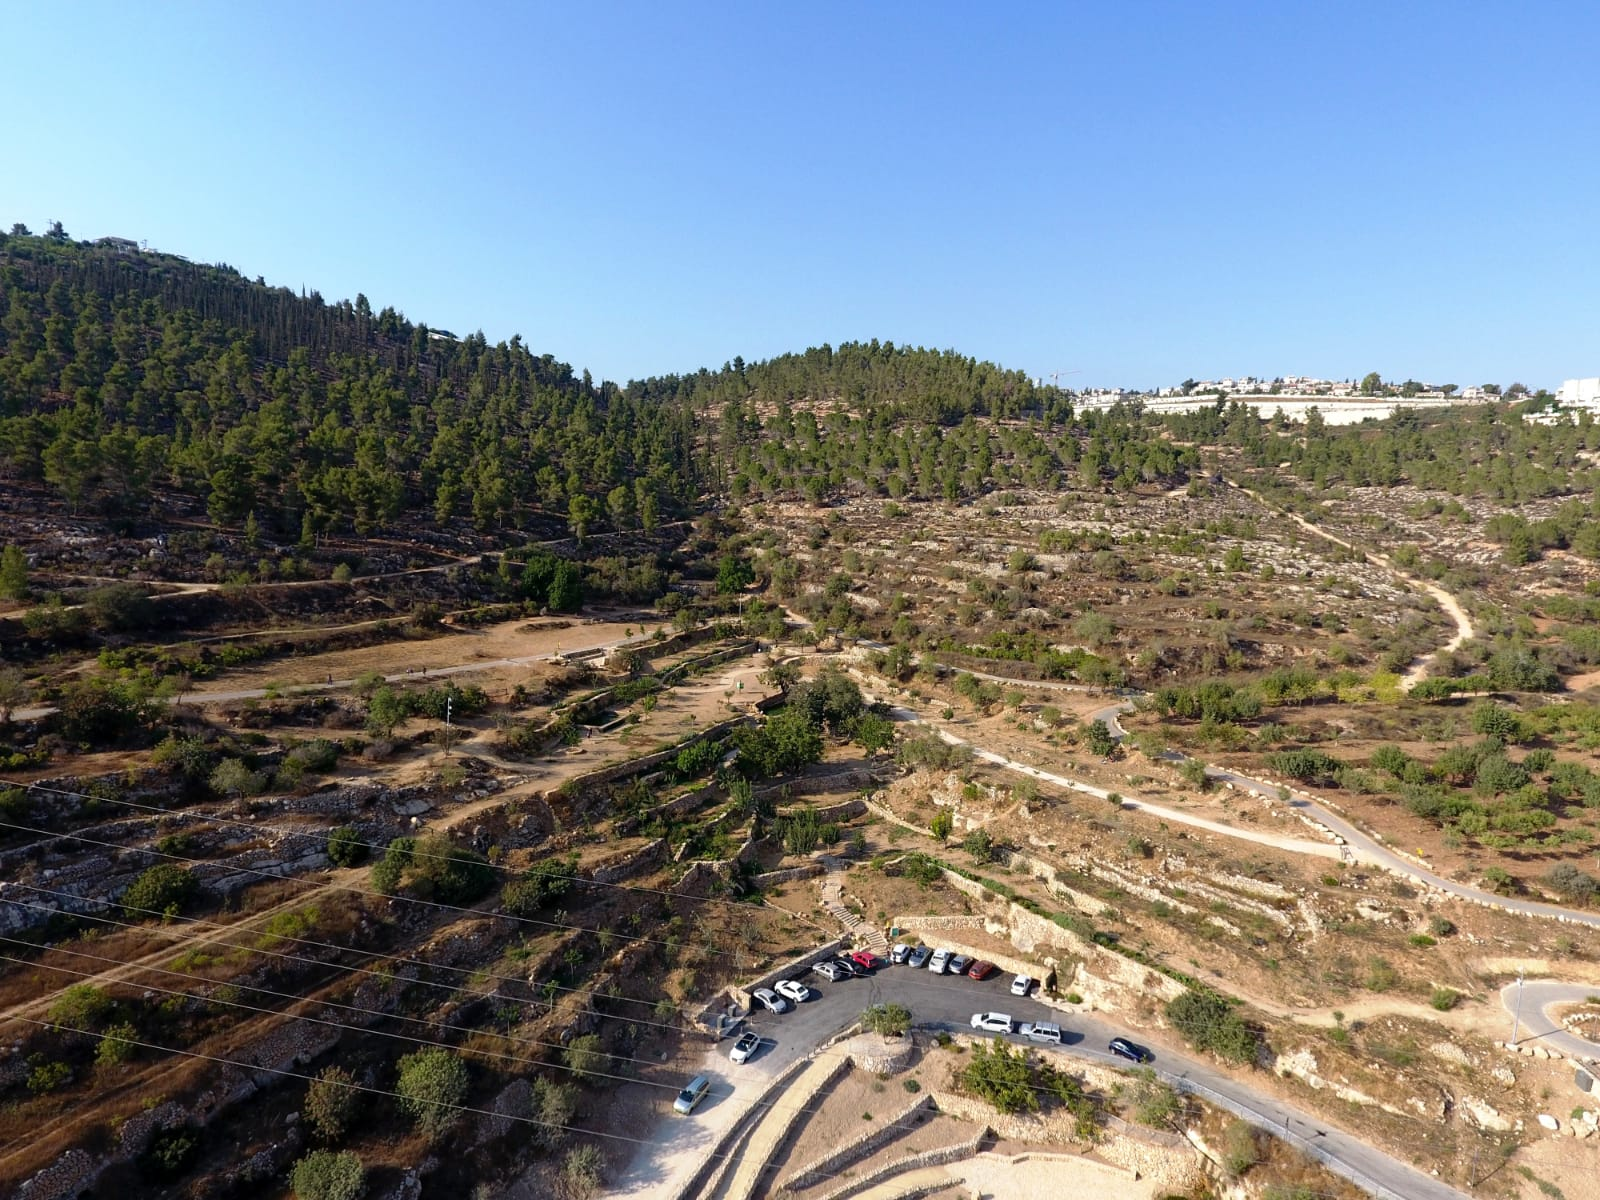 Reches Lavan, or White Ridge, east of Jerusalem. (Dov Greenblat, Society for the Protection of Nature in Israel)